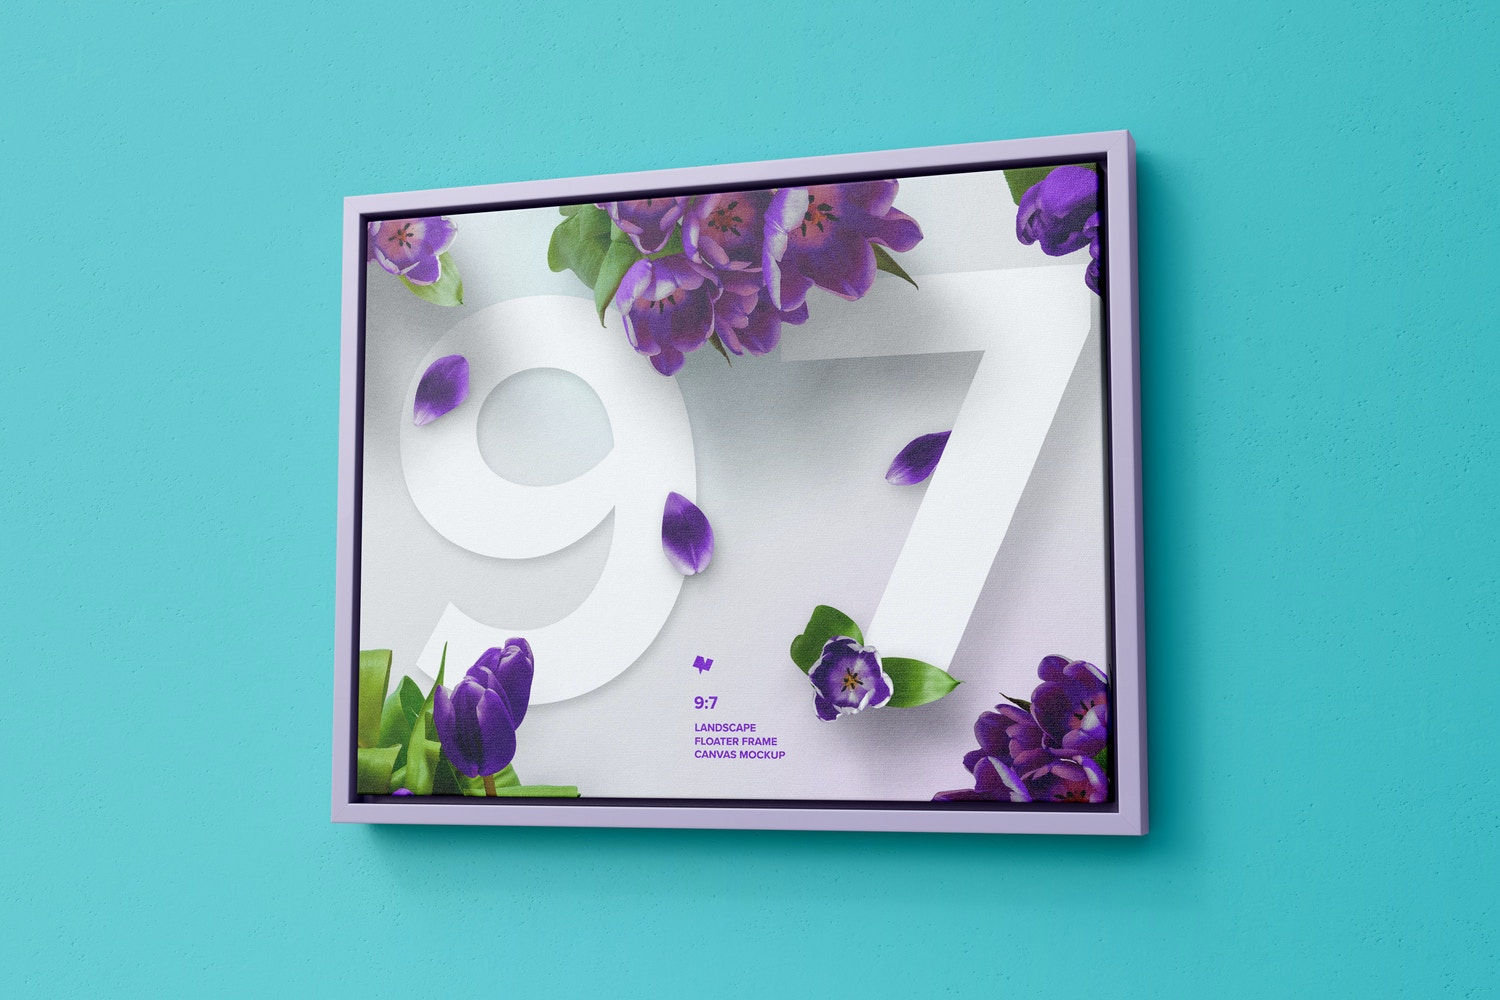 9:7 Landscape Canvas Mockup in Floater Frame, Right View